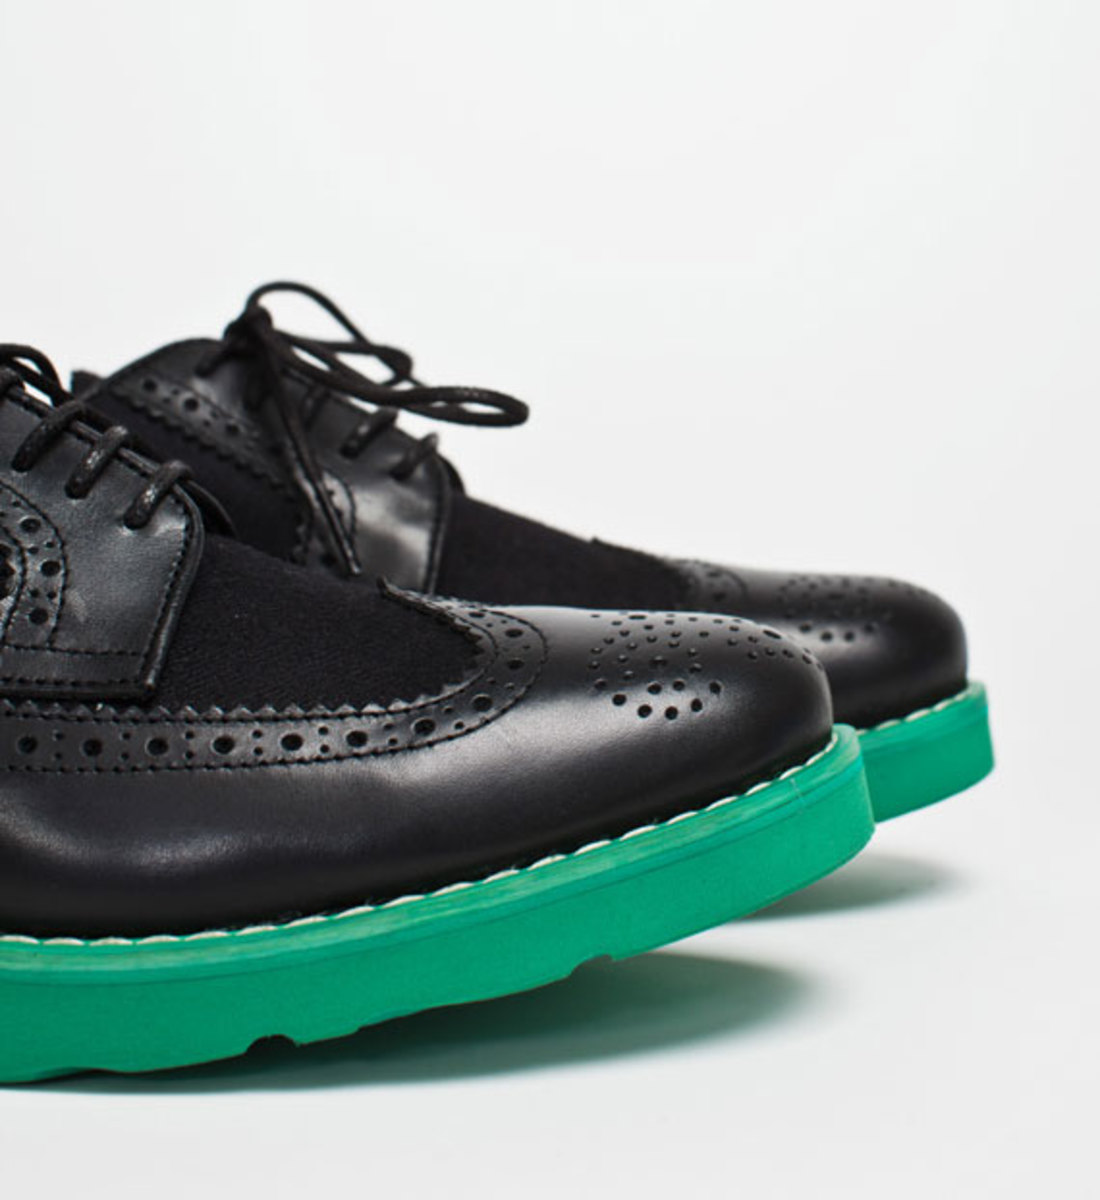 comme-des-garcons-shirt-the-generic-man-fall-2012-footwear-collection-16